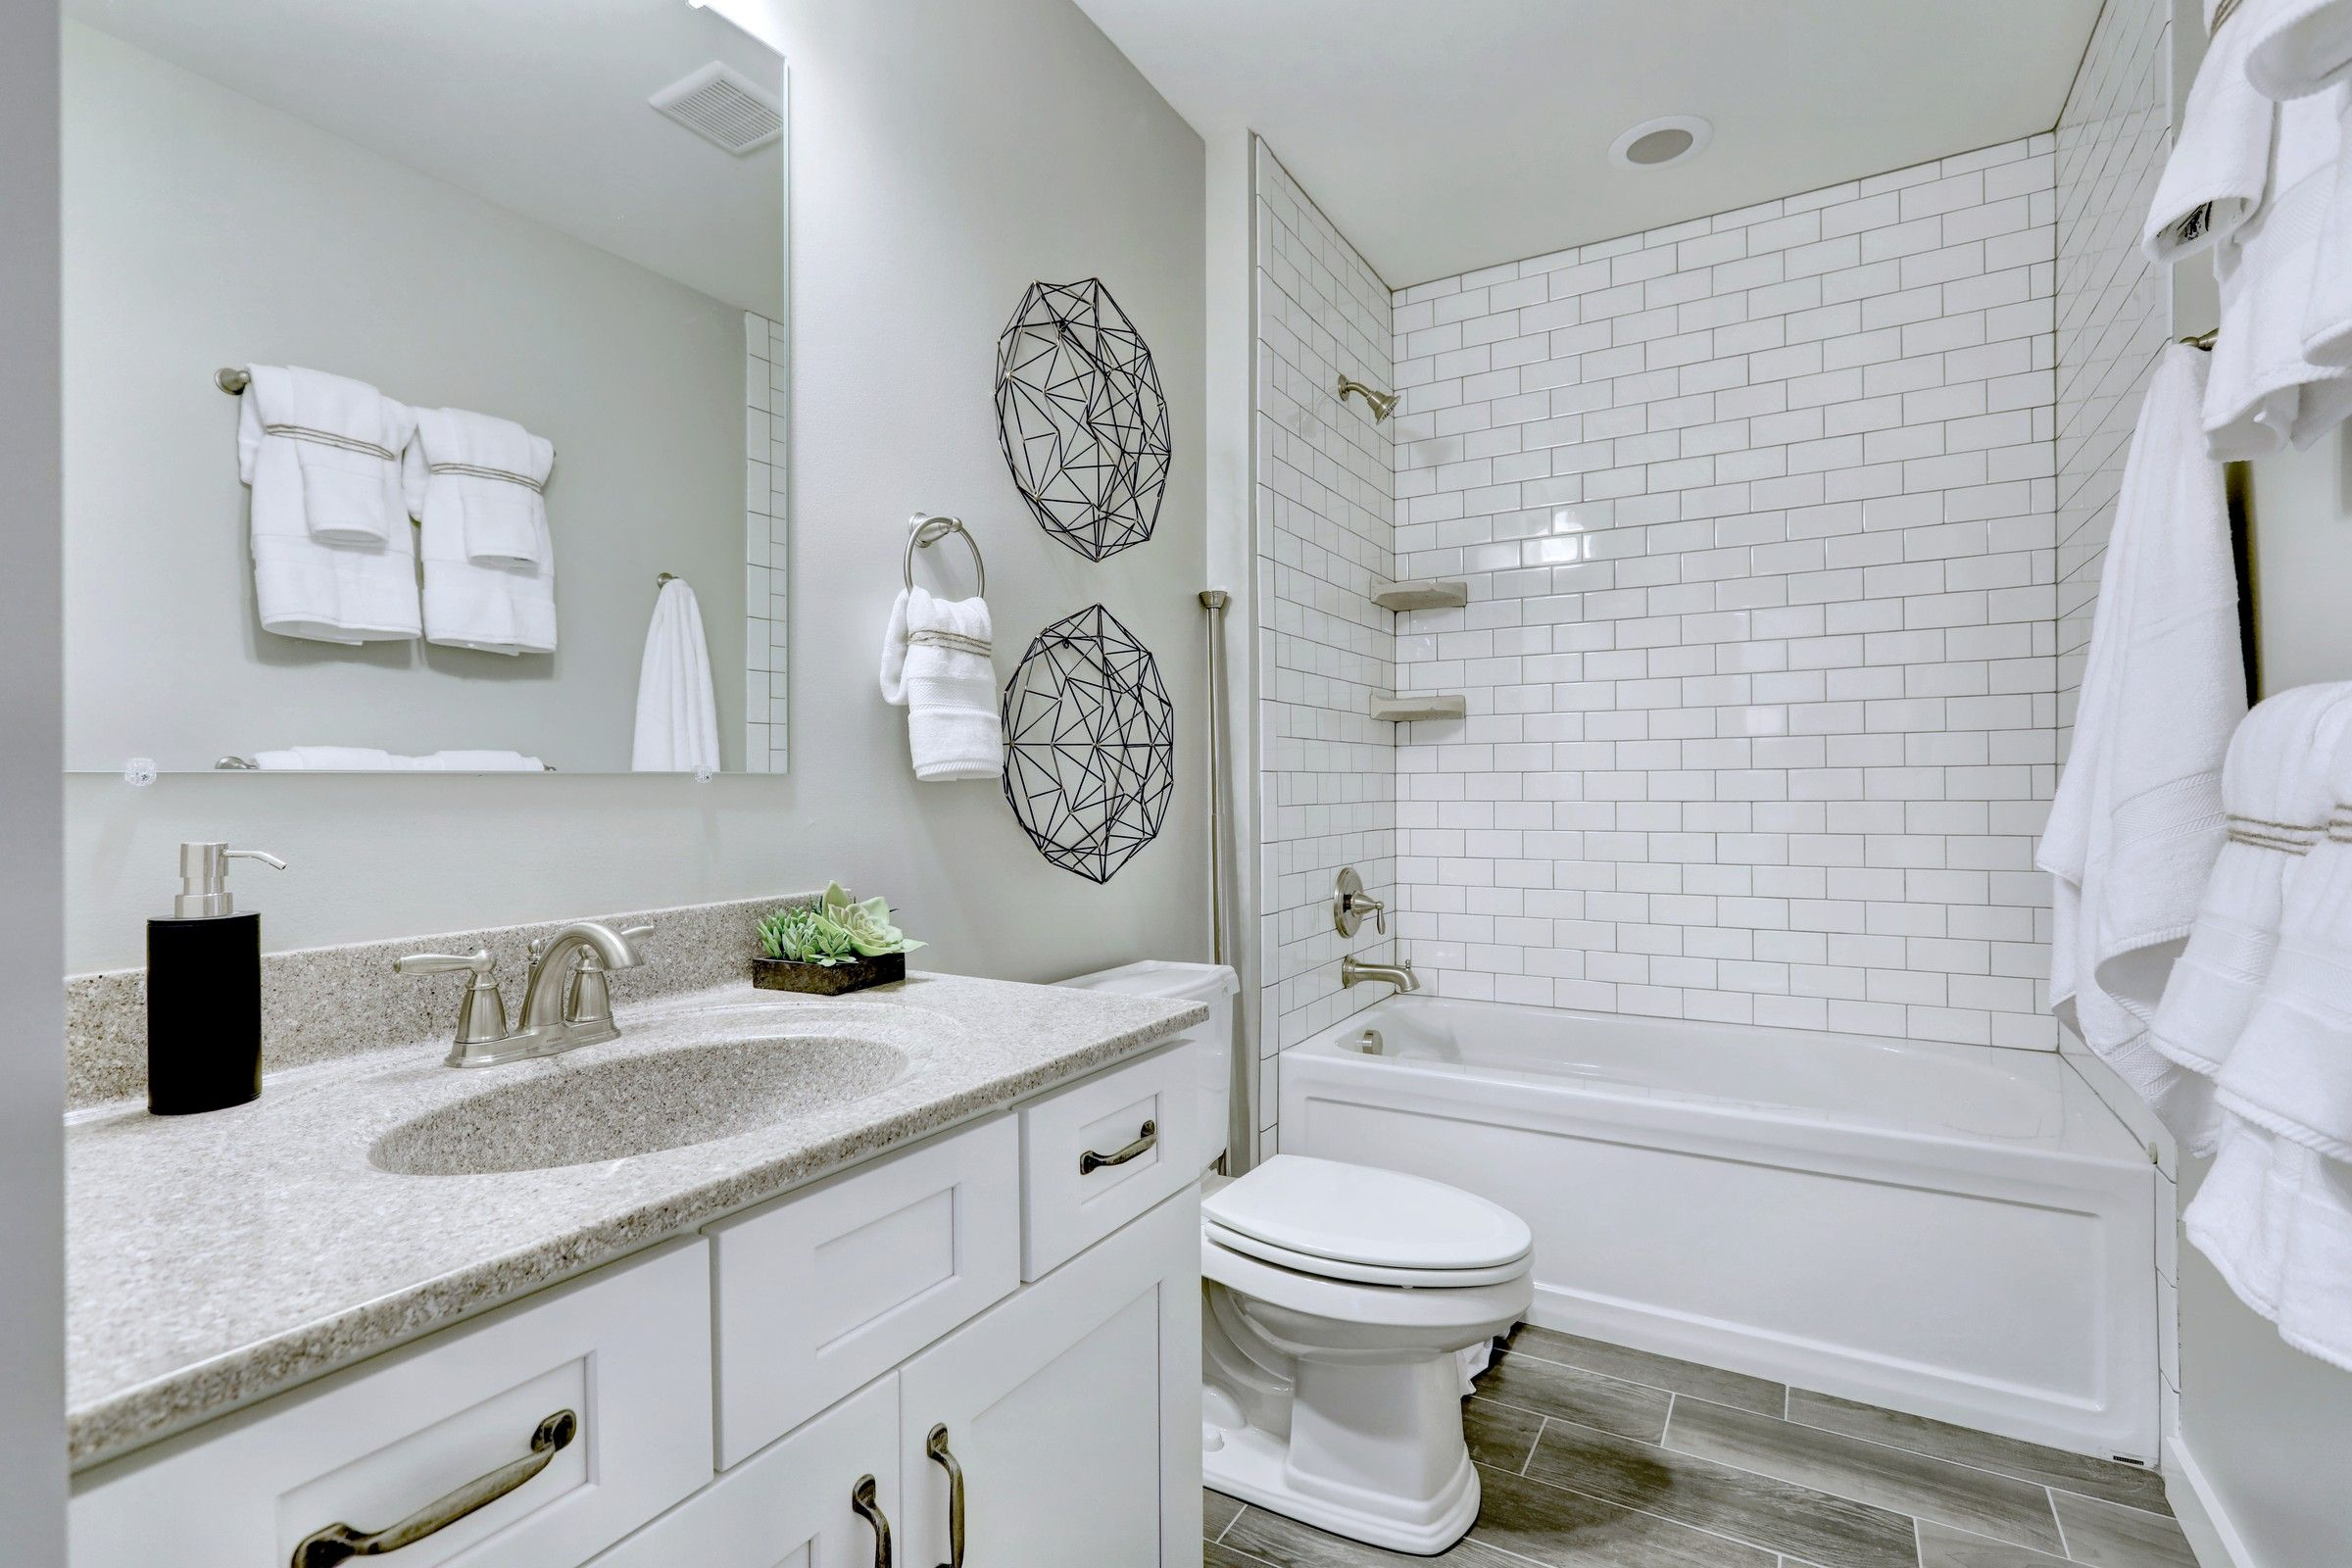 Bathroom featured in the Andrews Vintage By Keystone Custom Homes in York, PA